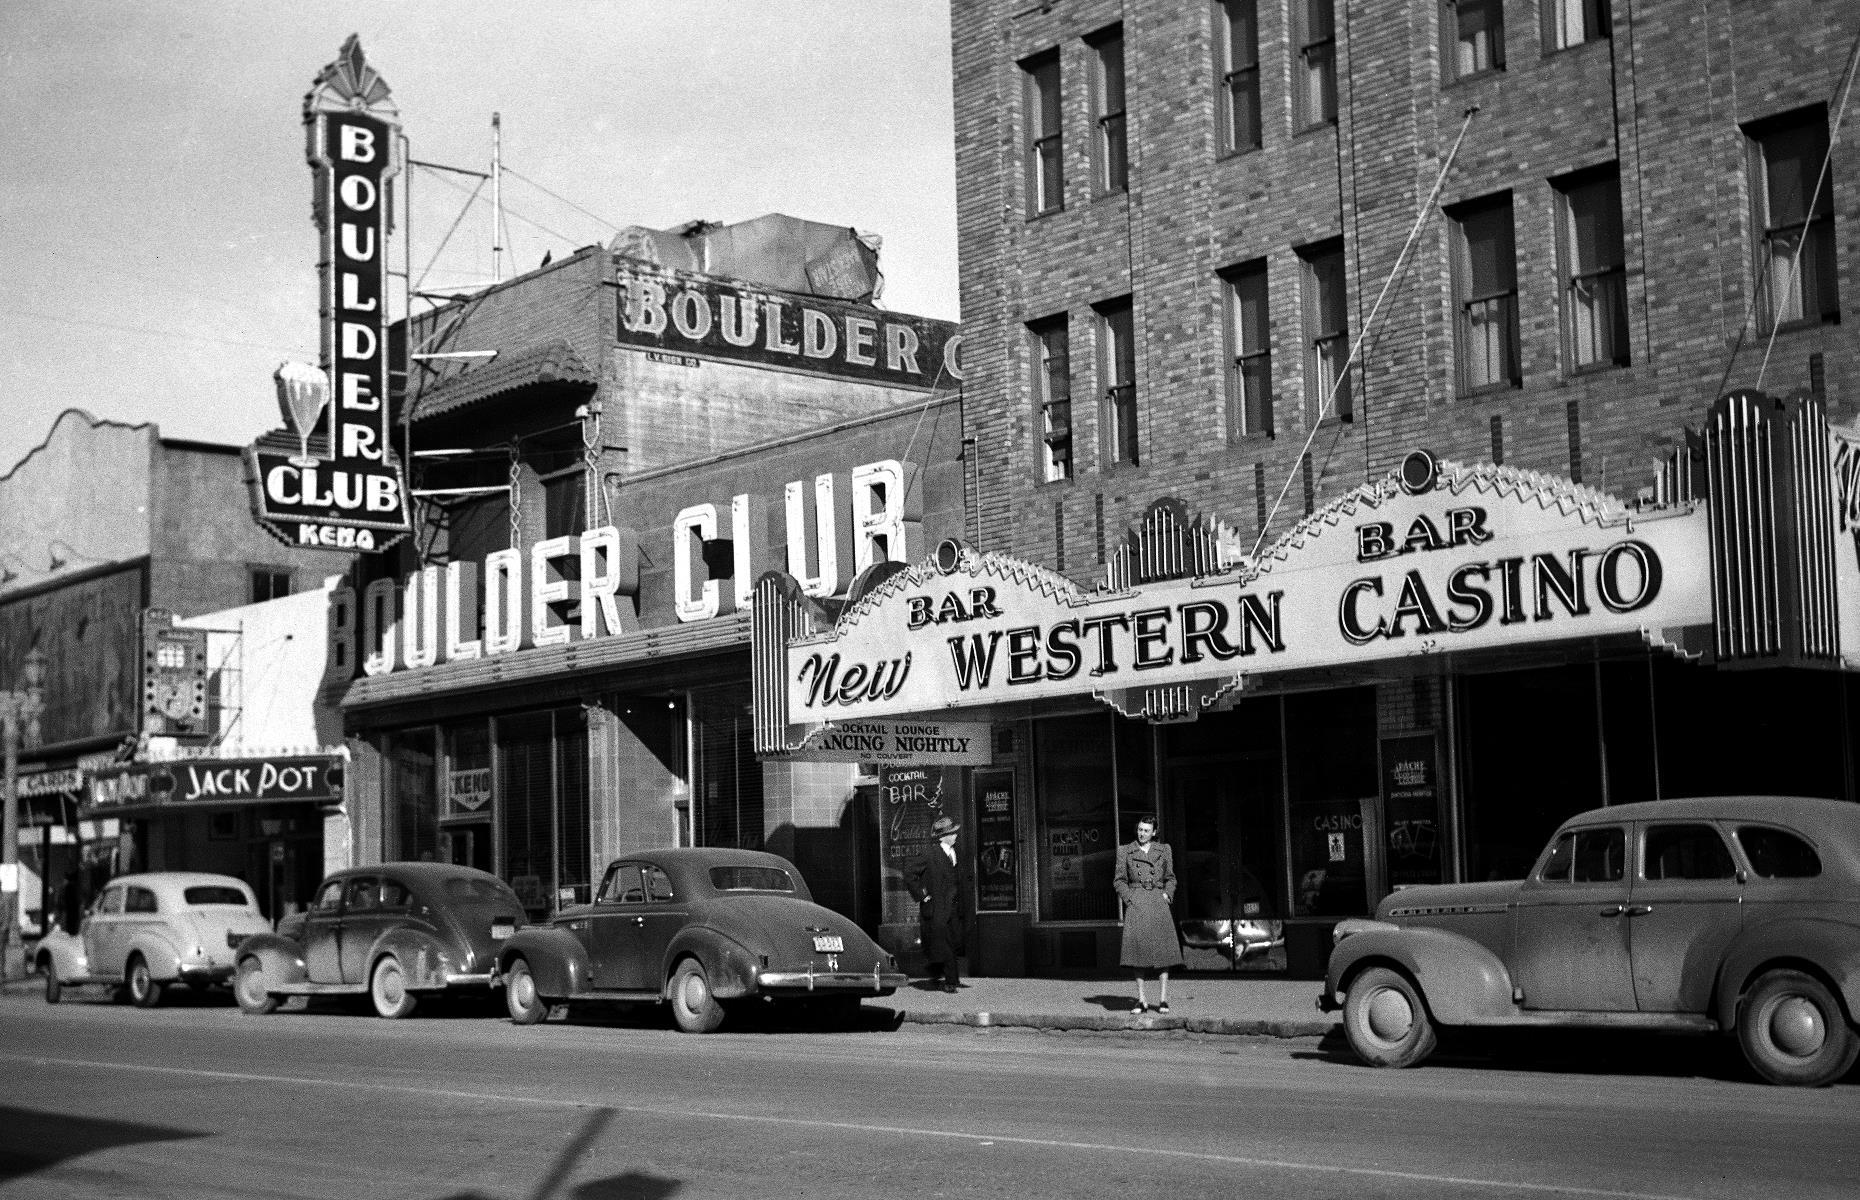 Slide 22 of 47: An iconic venue of the day was Boulder Club (pictured), a glittering casino that was one of the earliest spots to get a gambling license in the 1930s. It sadly burned down in 1956. While Fremont Street is now overshadowed by The Strip, you can still find plenty of live music venues and restaurants Downtown, not to mention SlotZilla, an enormous slot-machine-themed zip line.